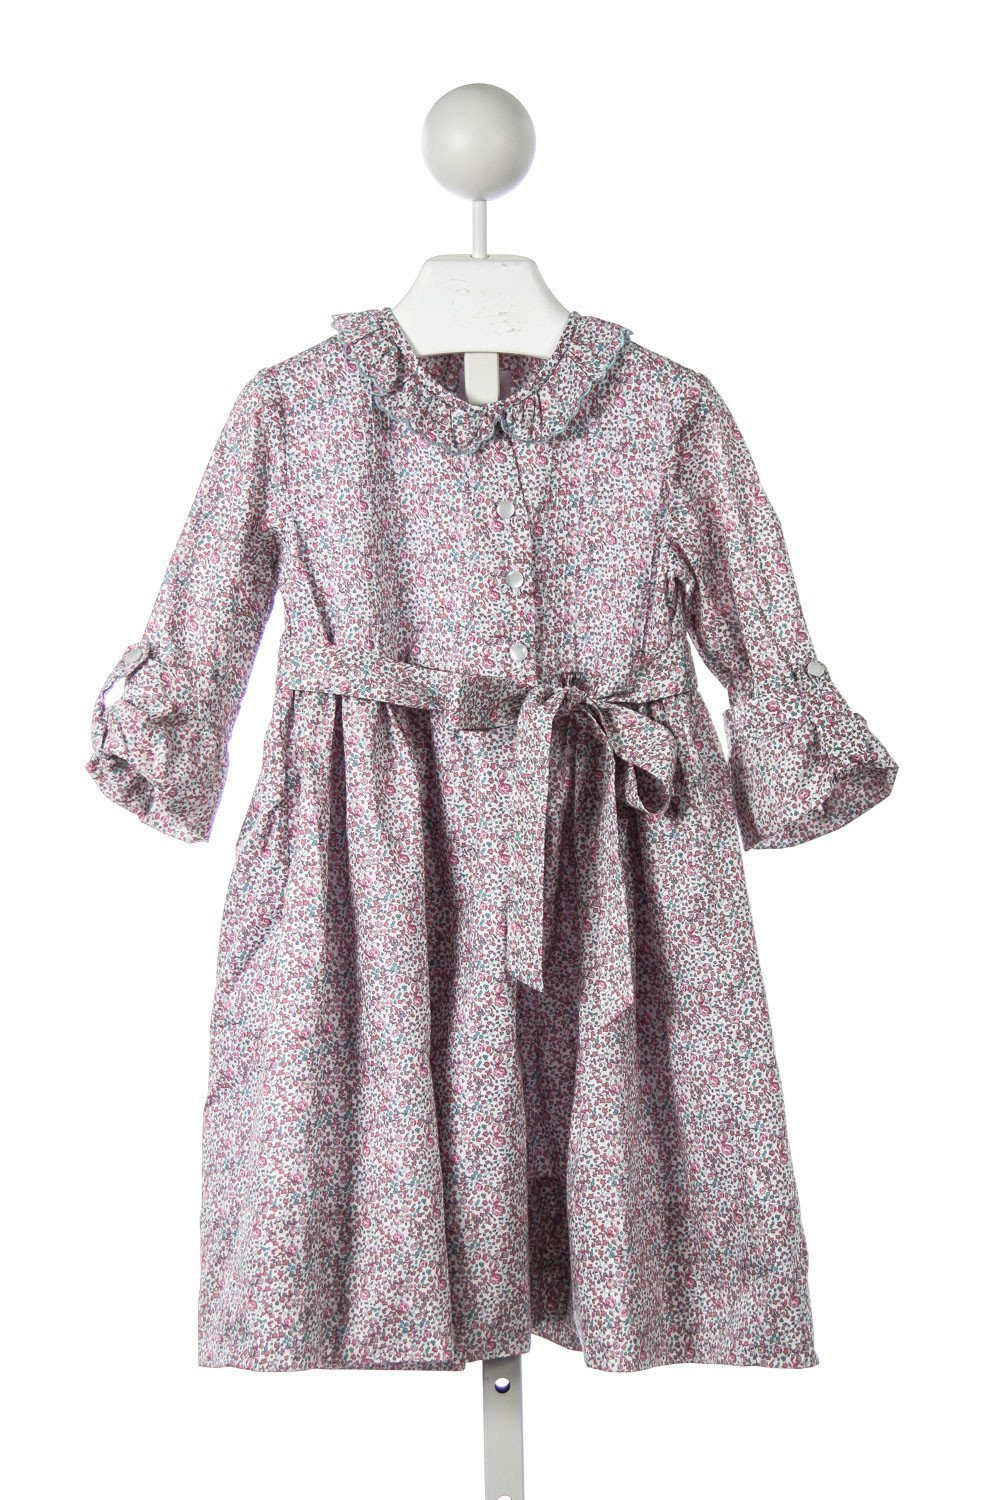 ALICE KATHLEEN SHIRTDRESS IN PINK AND SAGE LIBERTY